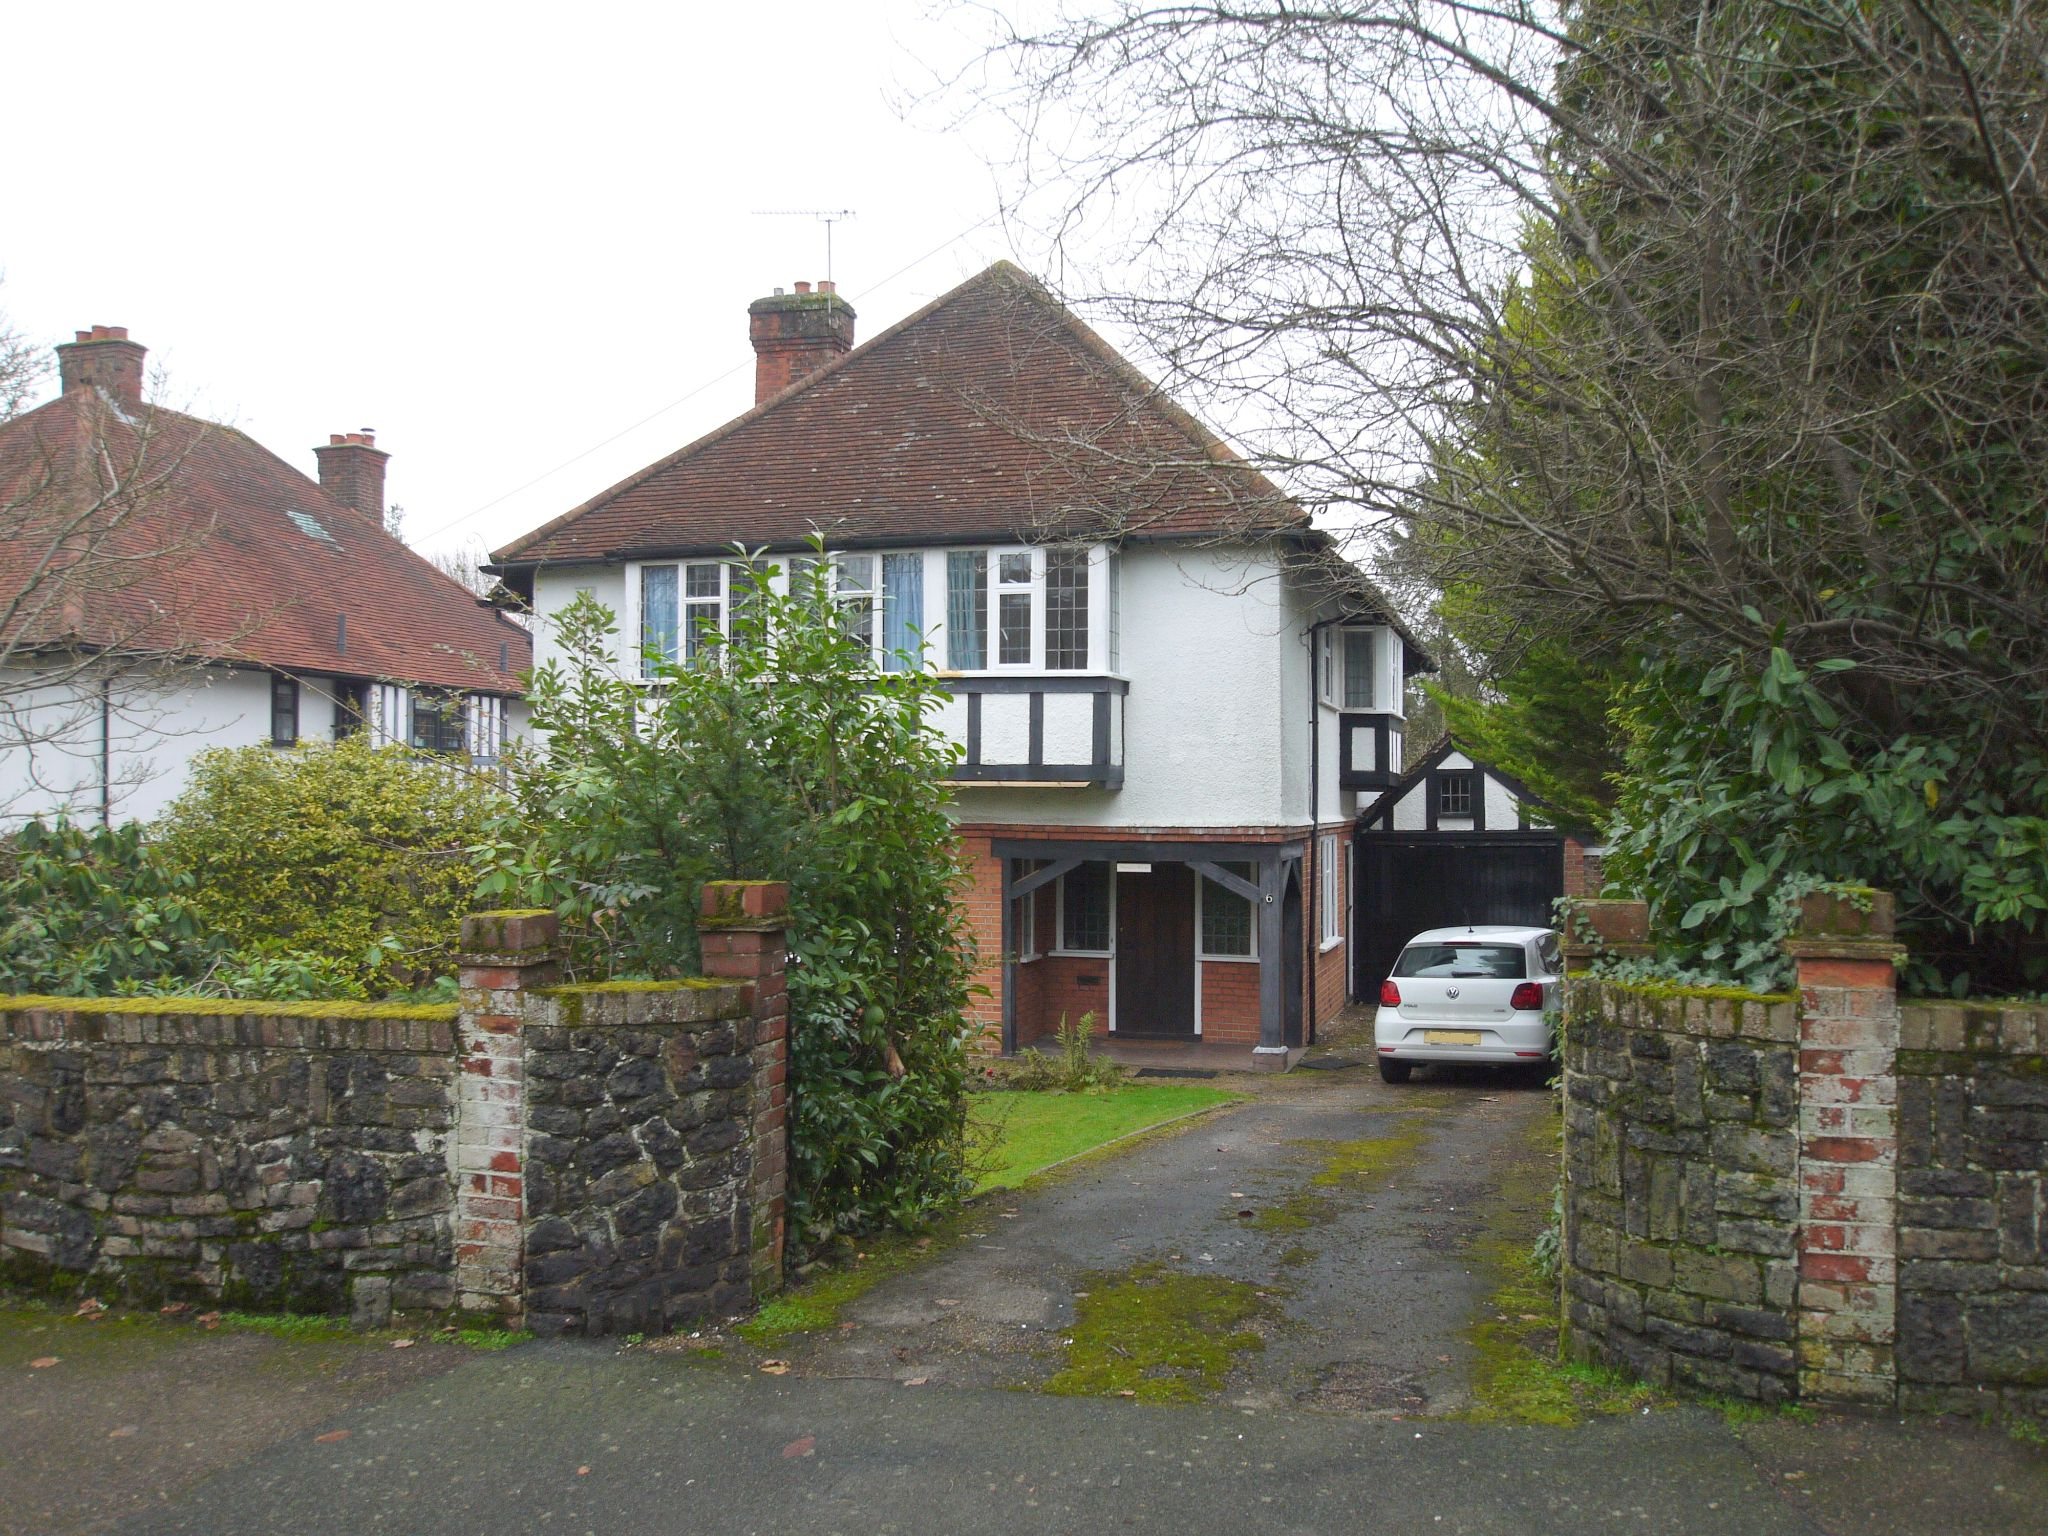 4 bedroom detached house To Let in Sevenoaks - Photograph 1